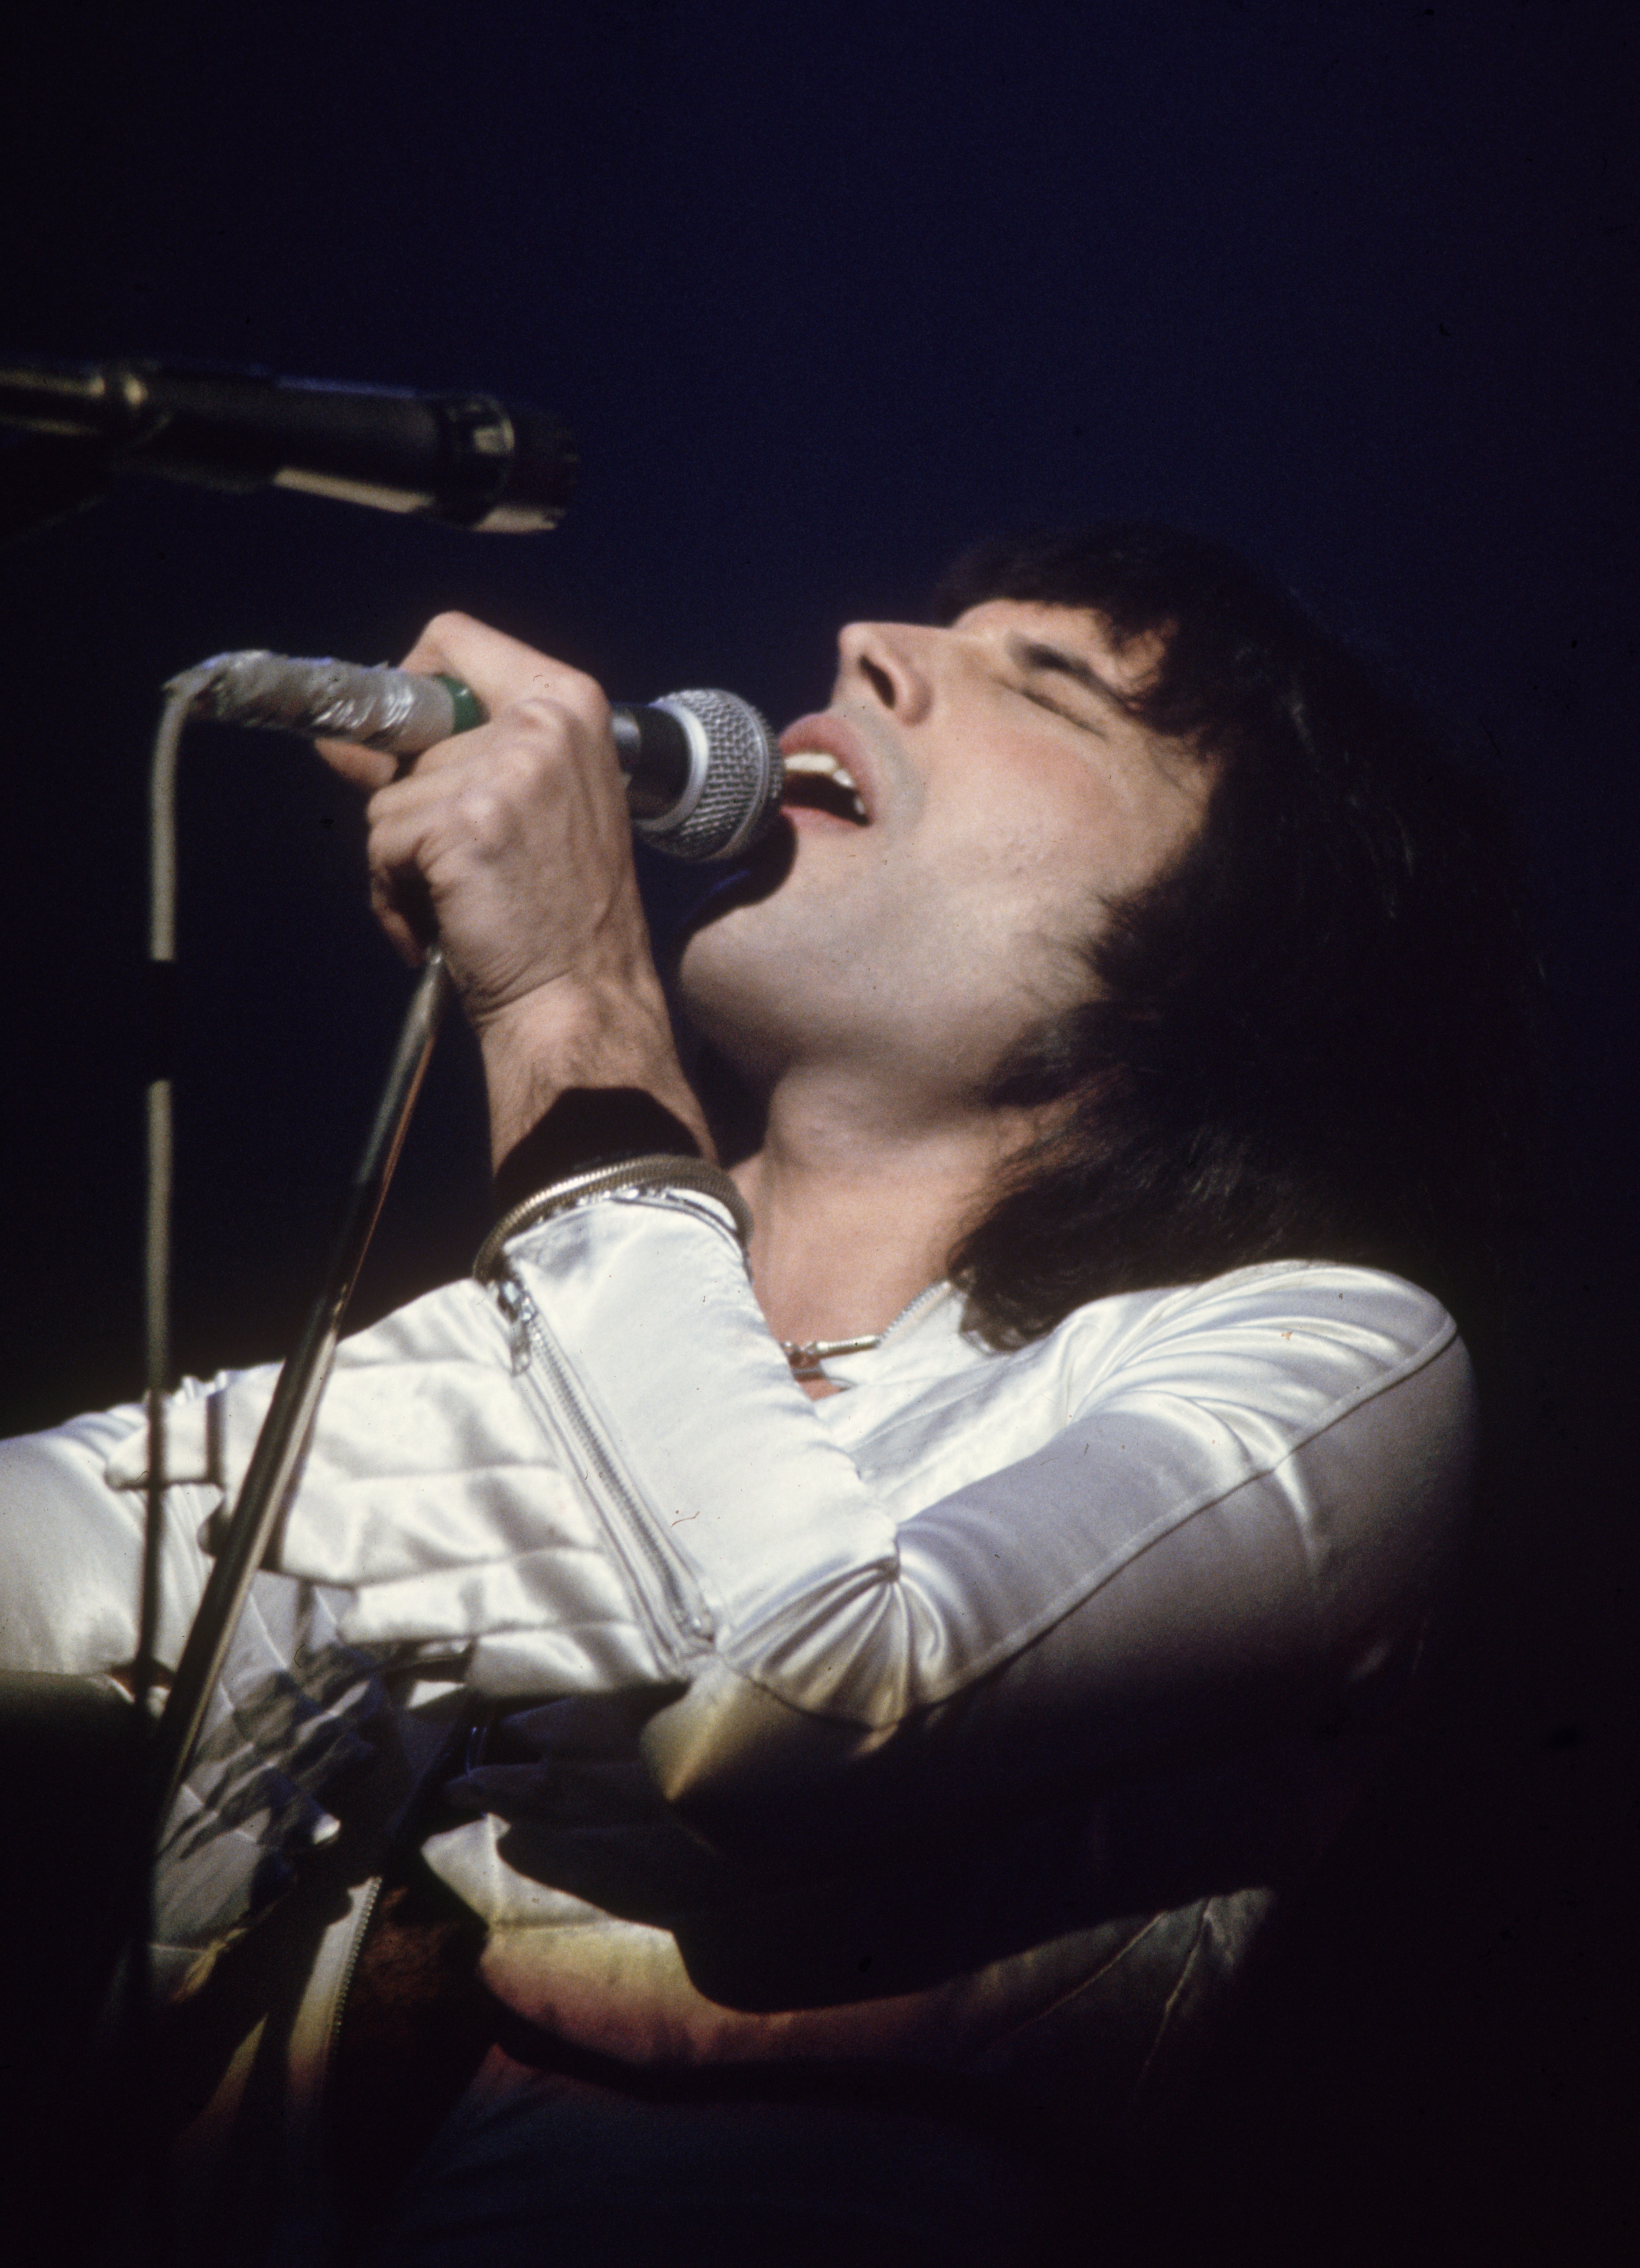 circa 1975: Freddie Mercury (1946 - 1991), lead singer of 70s hard rock quartet Queen, in concert during the group's British tour. (Photo by Keystone/Getty Images)